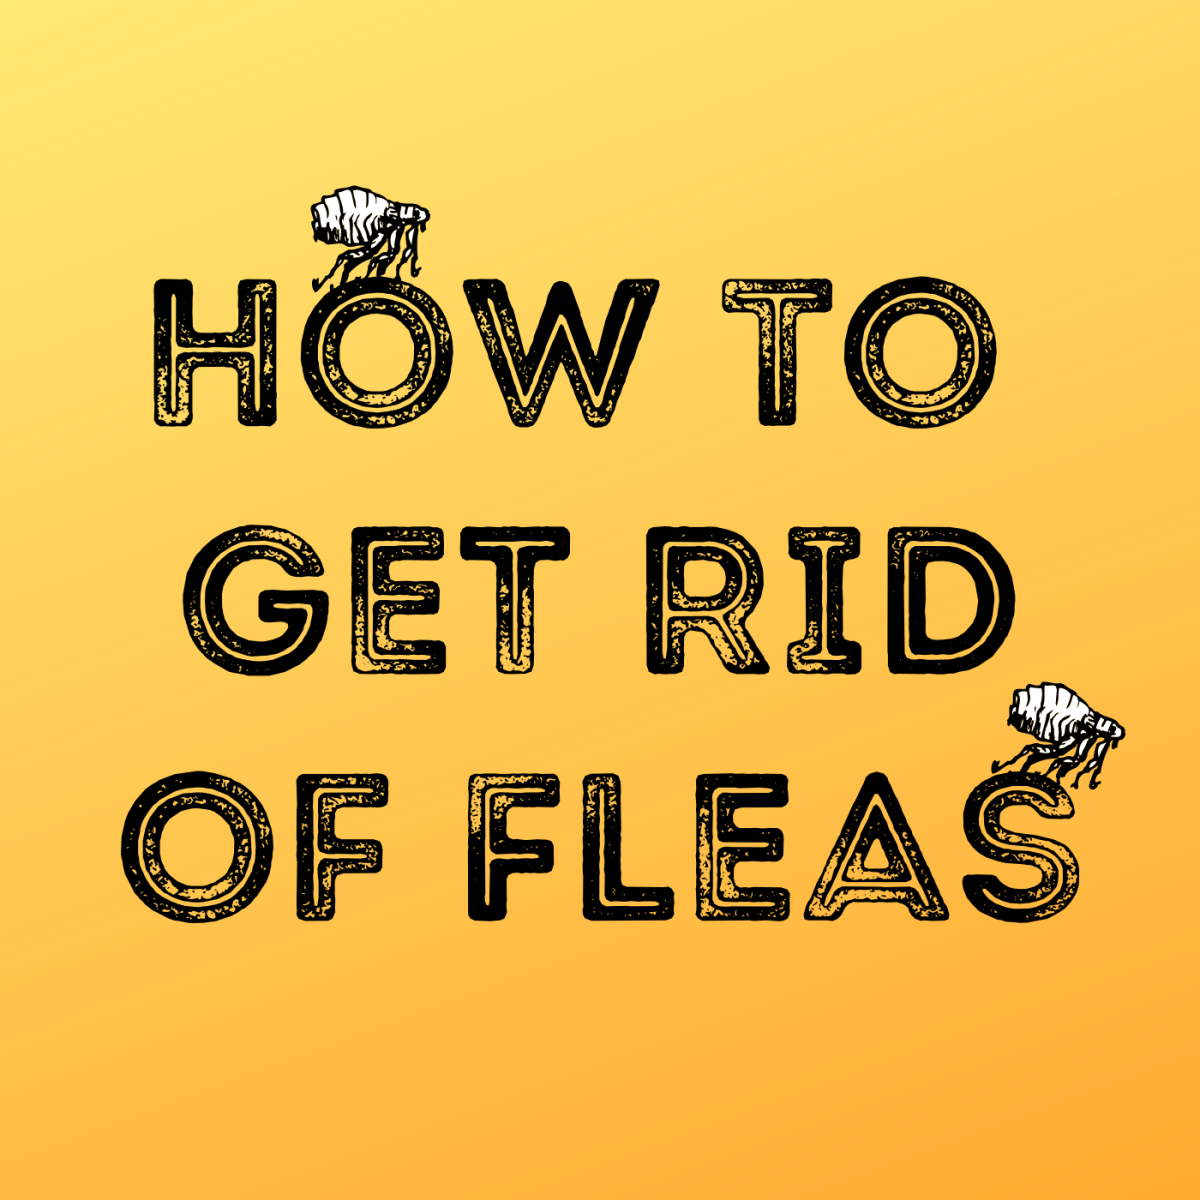 Read about my experience with a flea infestation and how I got rid of them.